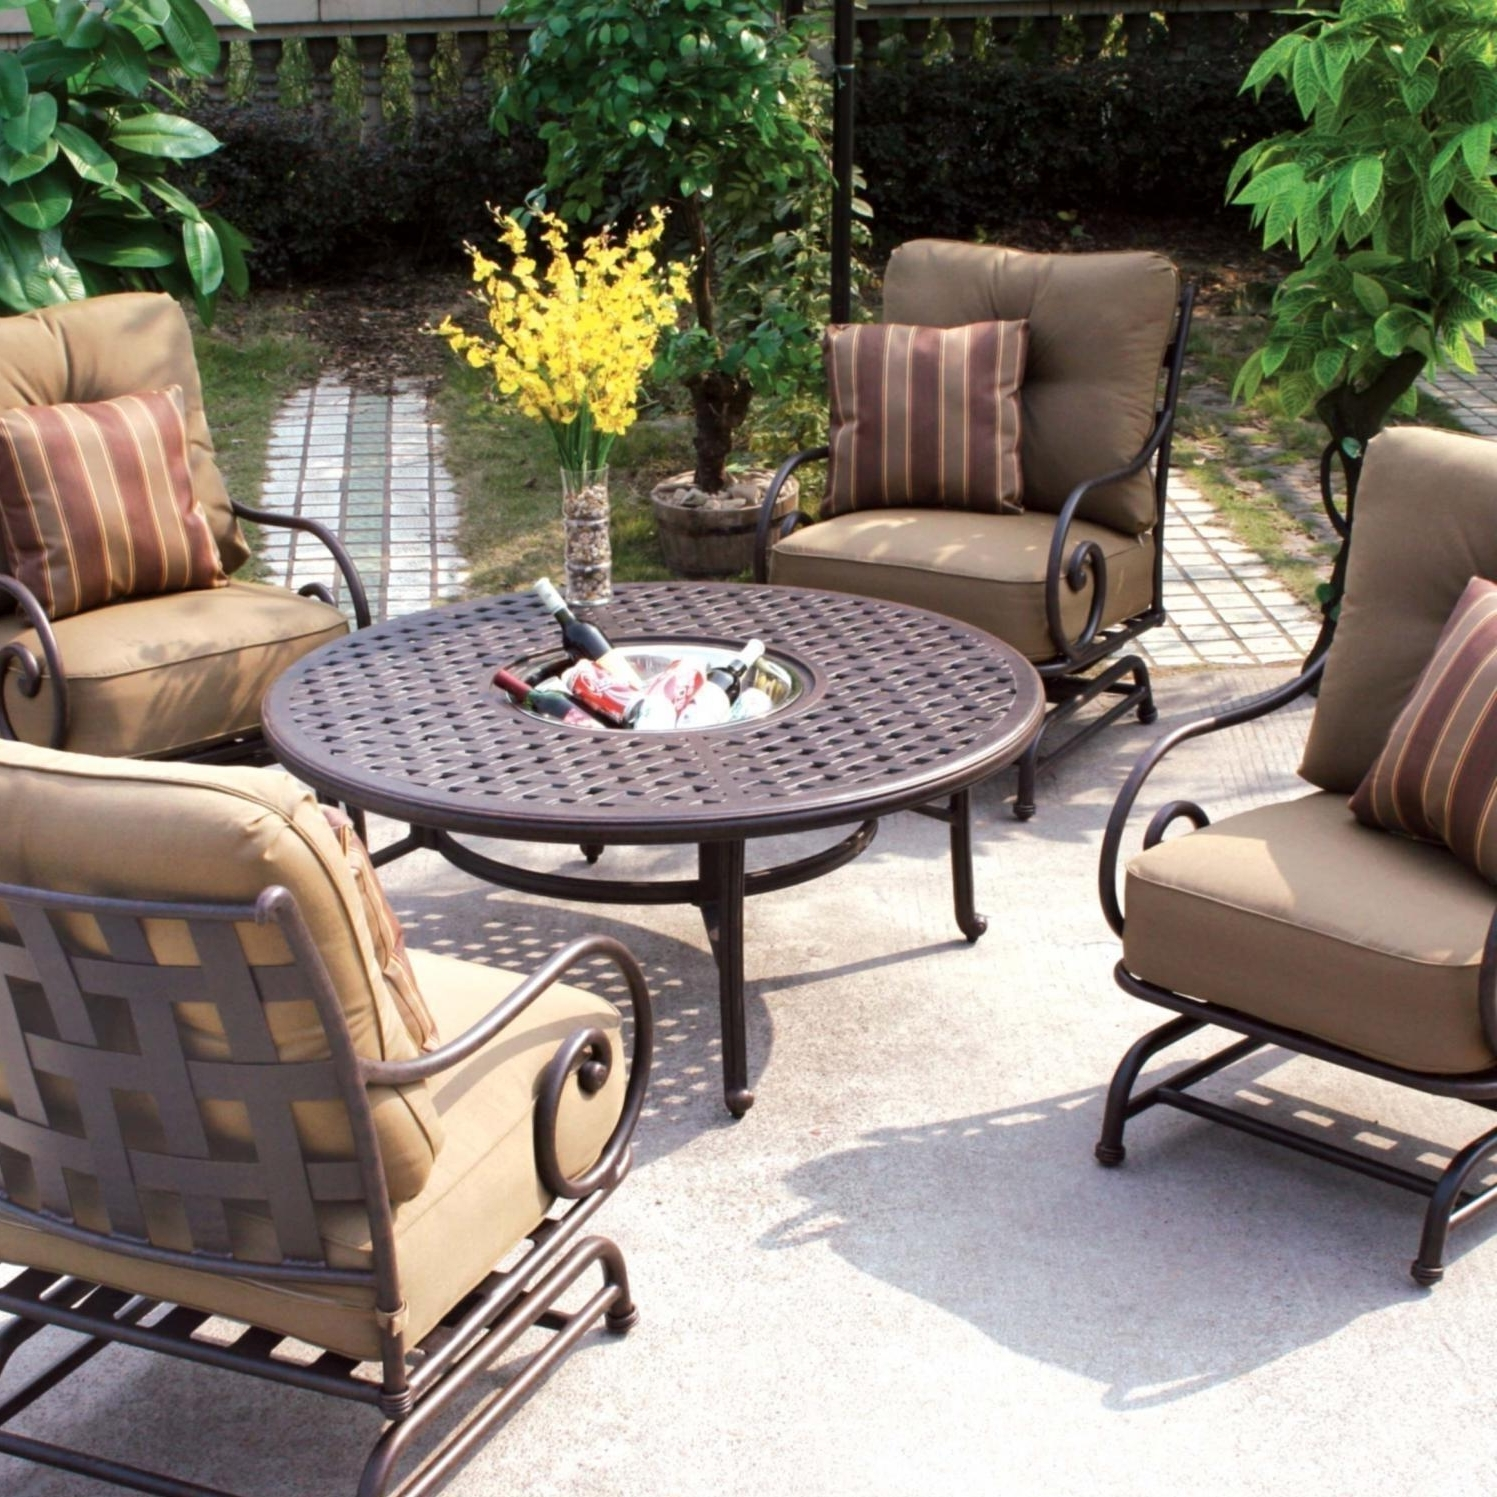 Patio Furniture Conversation Sets At Home Depot With Well Known Darlee Malibu 5 Piece Cast Aluminum Patio Conversation Seating Set (View 18 of 20)